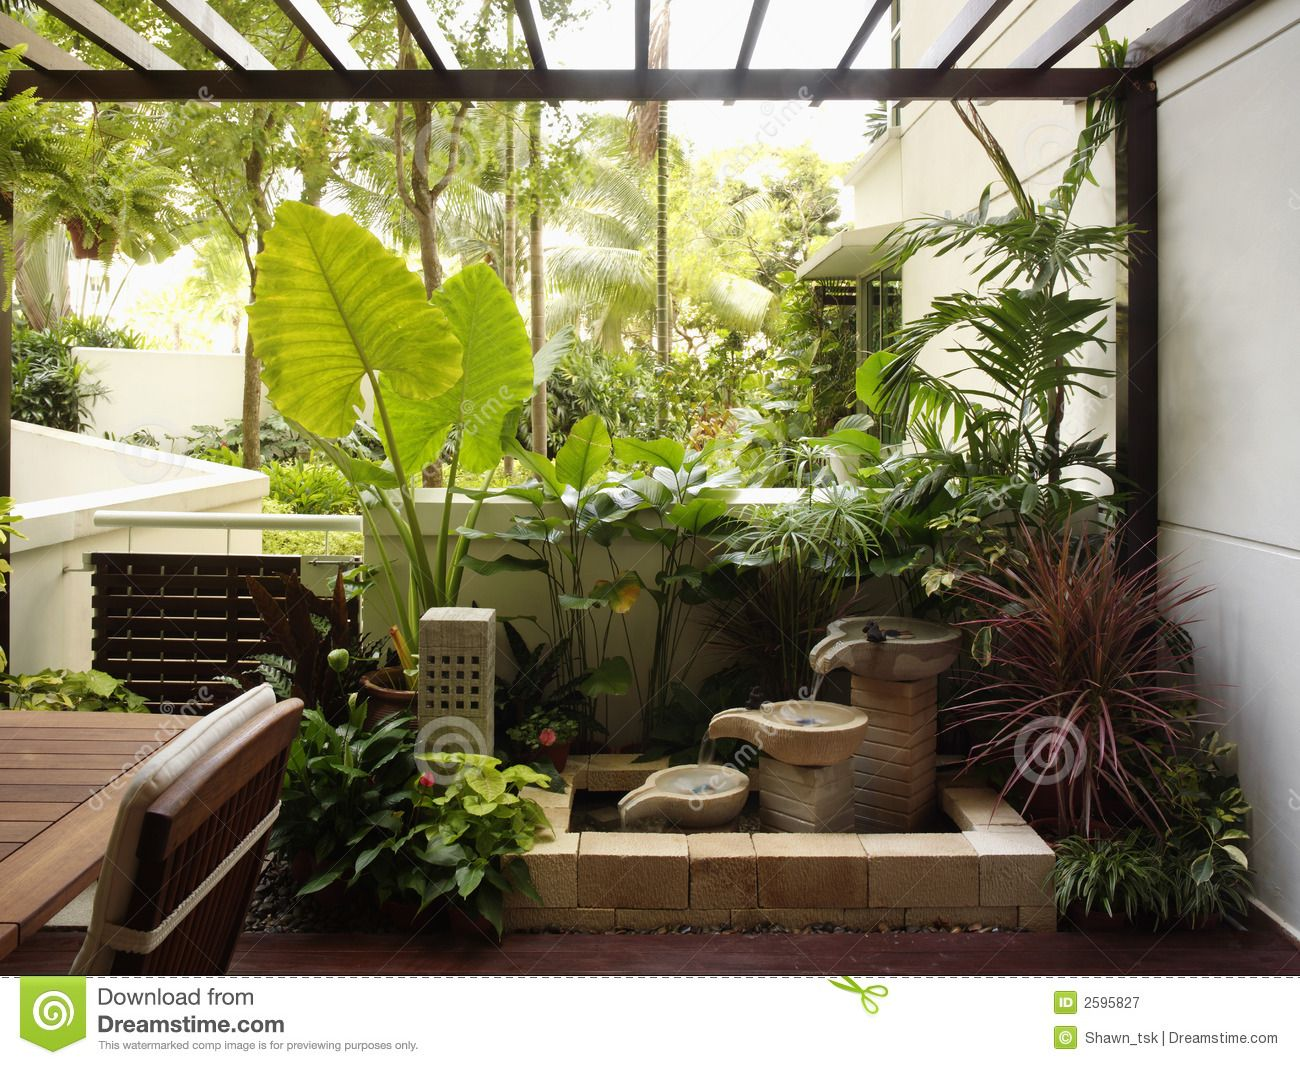 Interior design garden download from over 29 million for Indoor gardening design